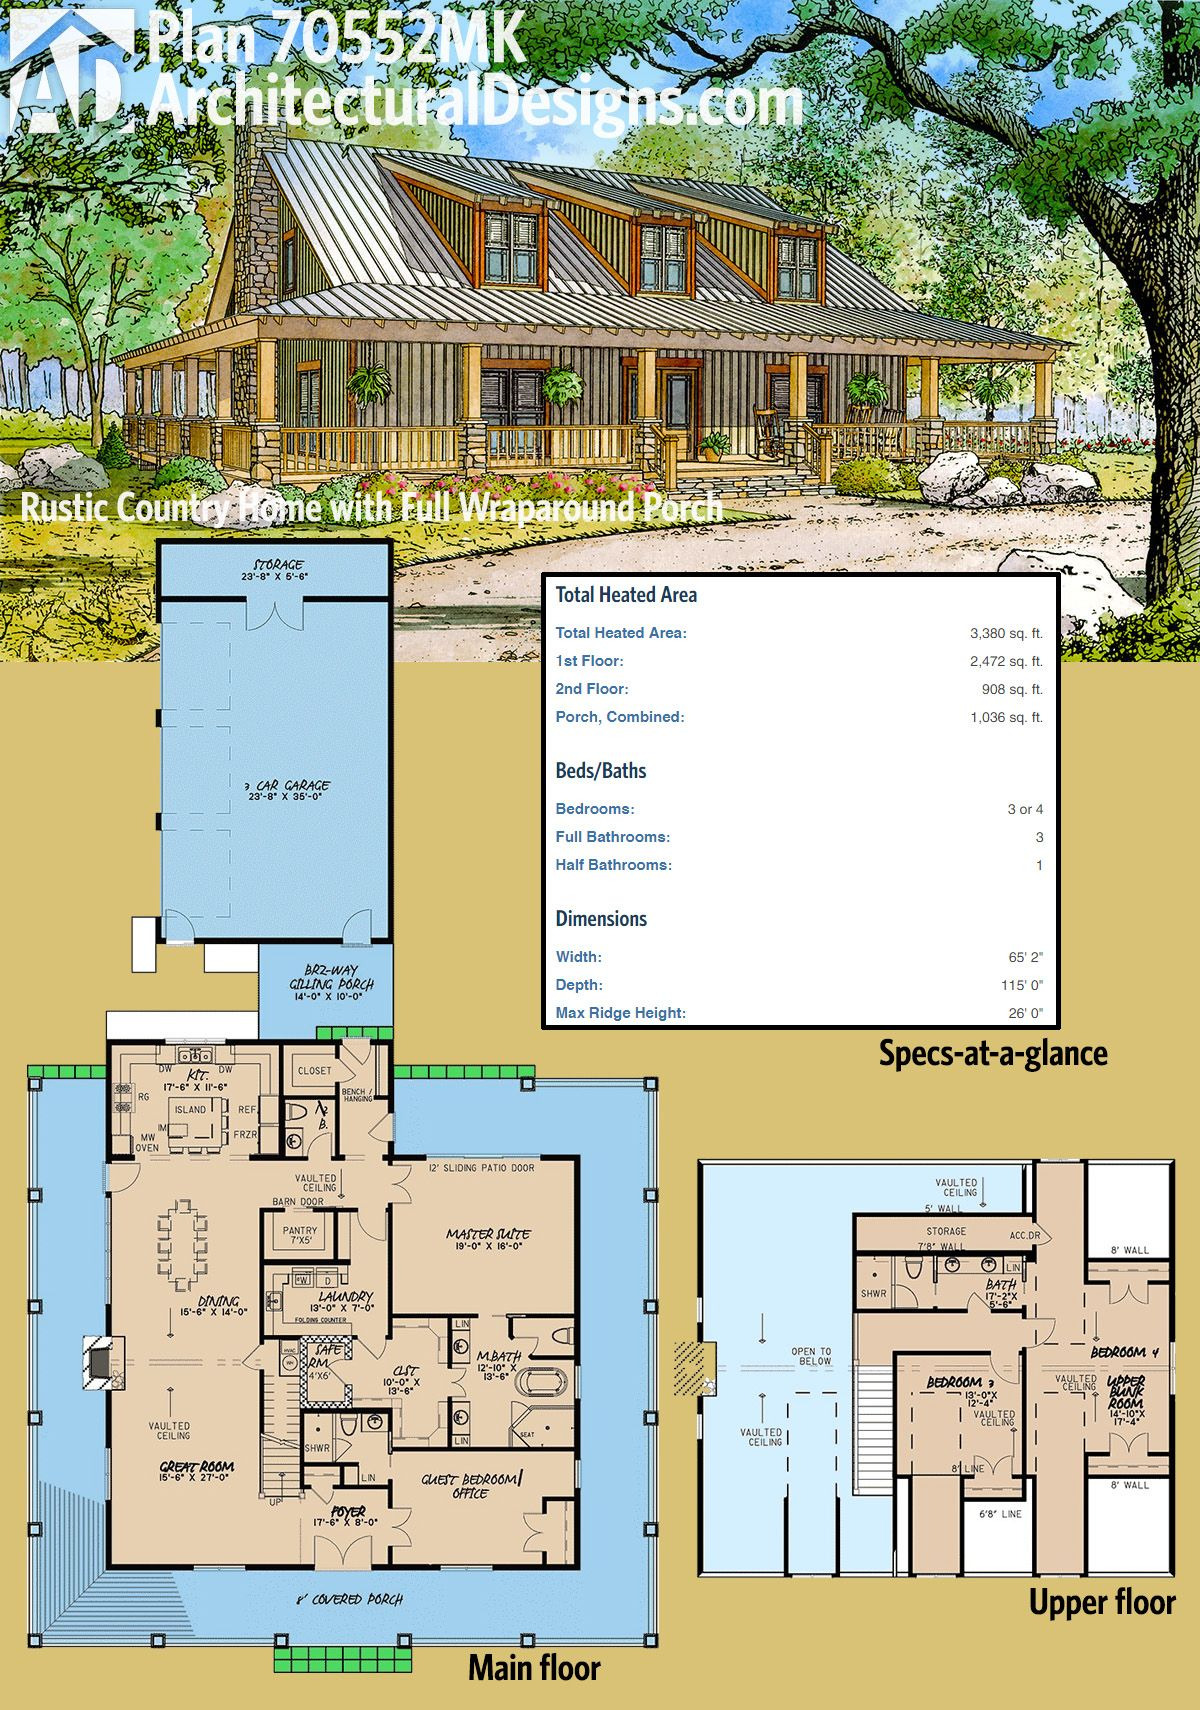 Country Homes House Plans Beautiful Plan Mk Rustic Country Home Plan with Wraparound Porch